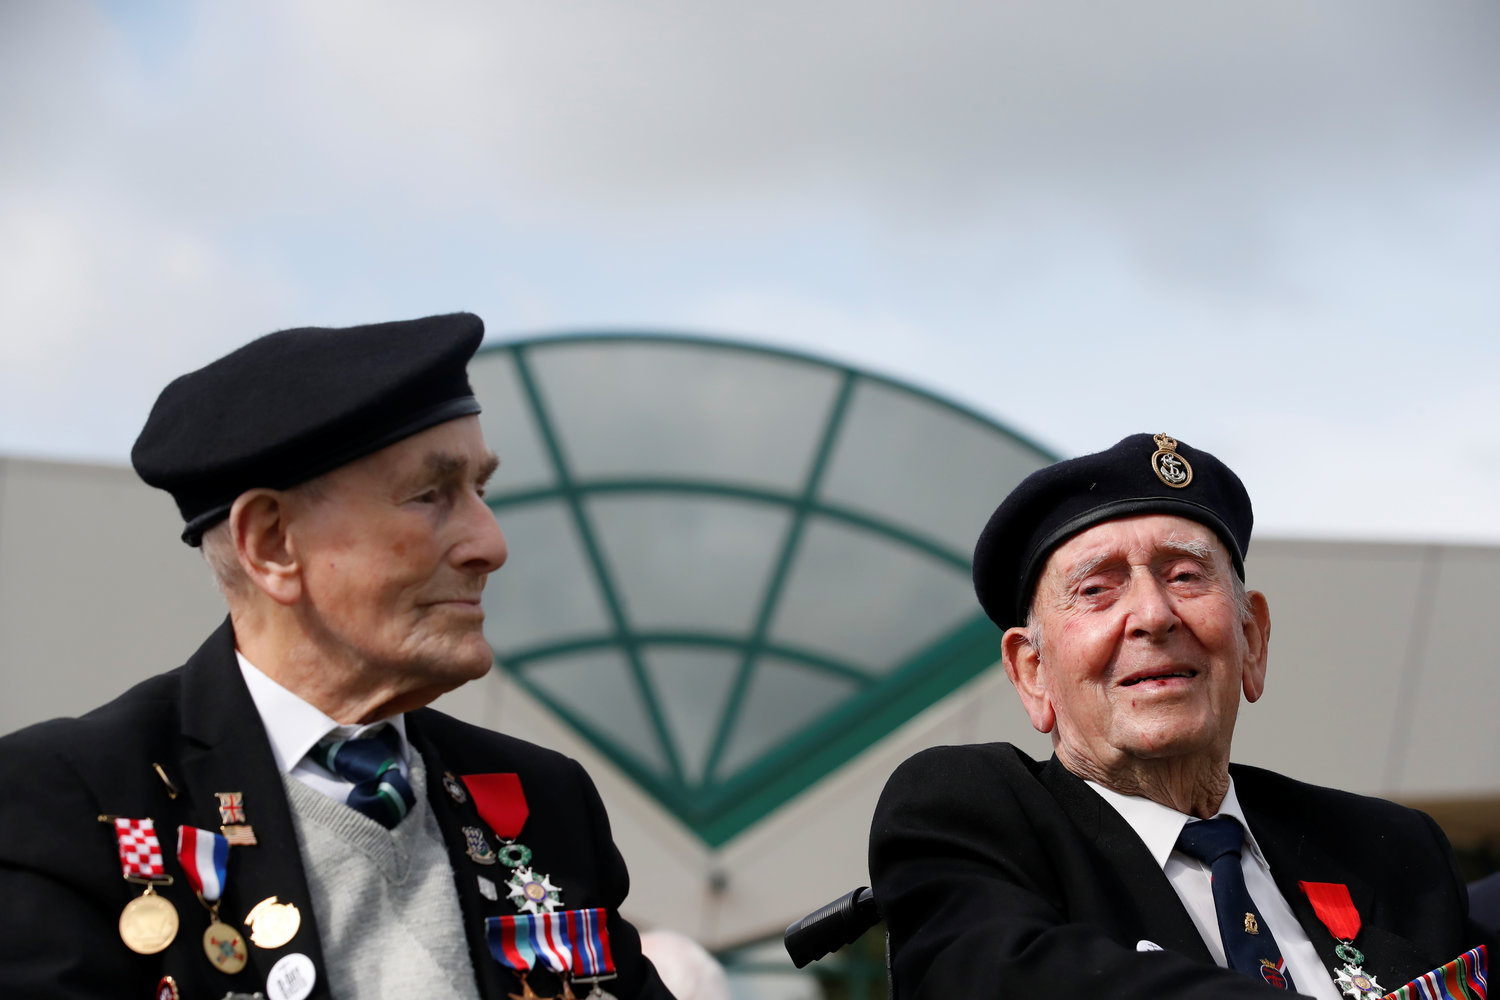 British WWII D-Day veterans attend a ceremony near Pegasus Bridge, as France prepares to commemorate the 75th anniversary of D-Day, in Ranville, France, June 5.